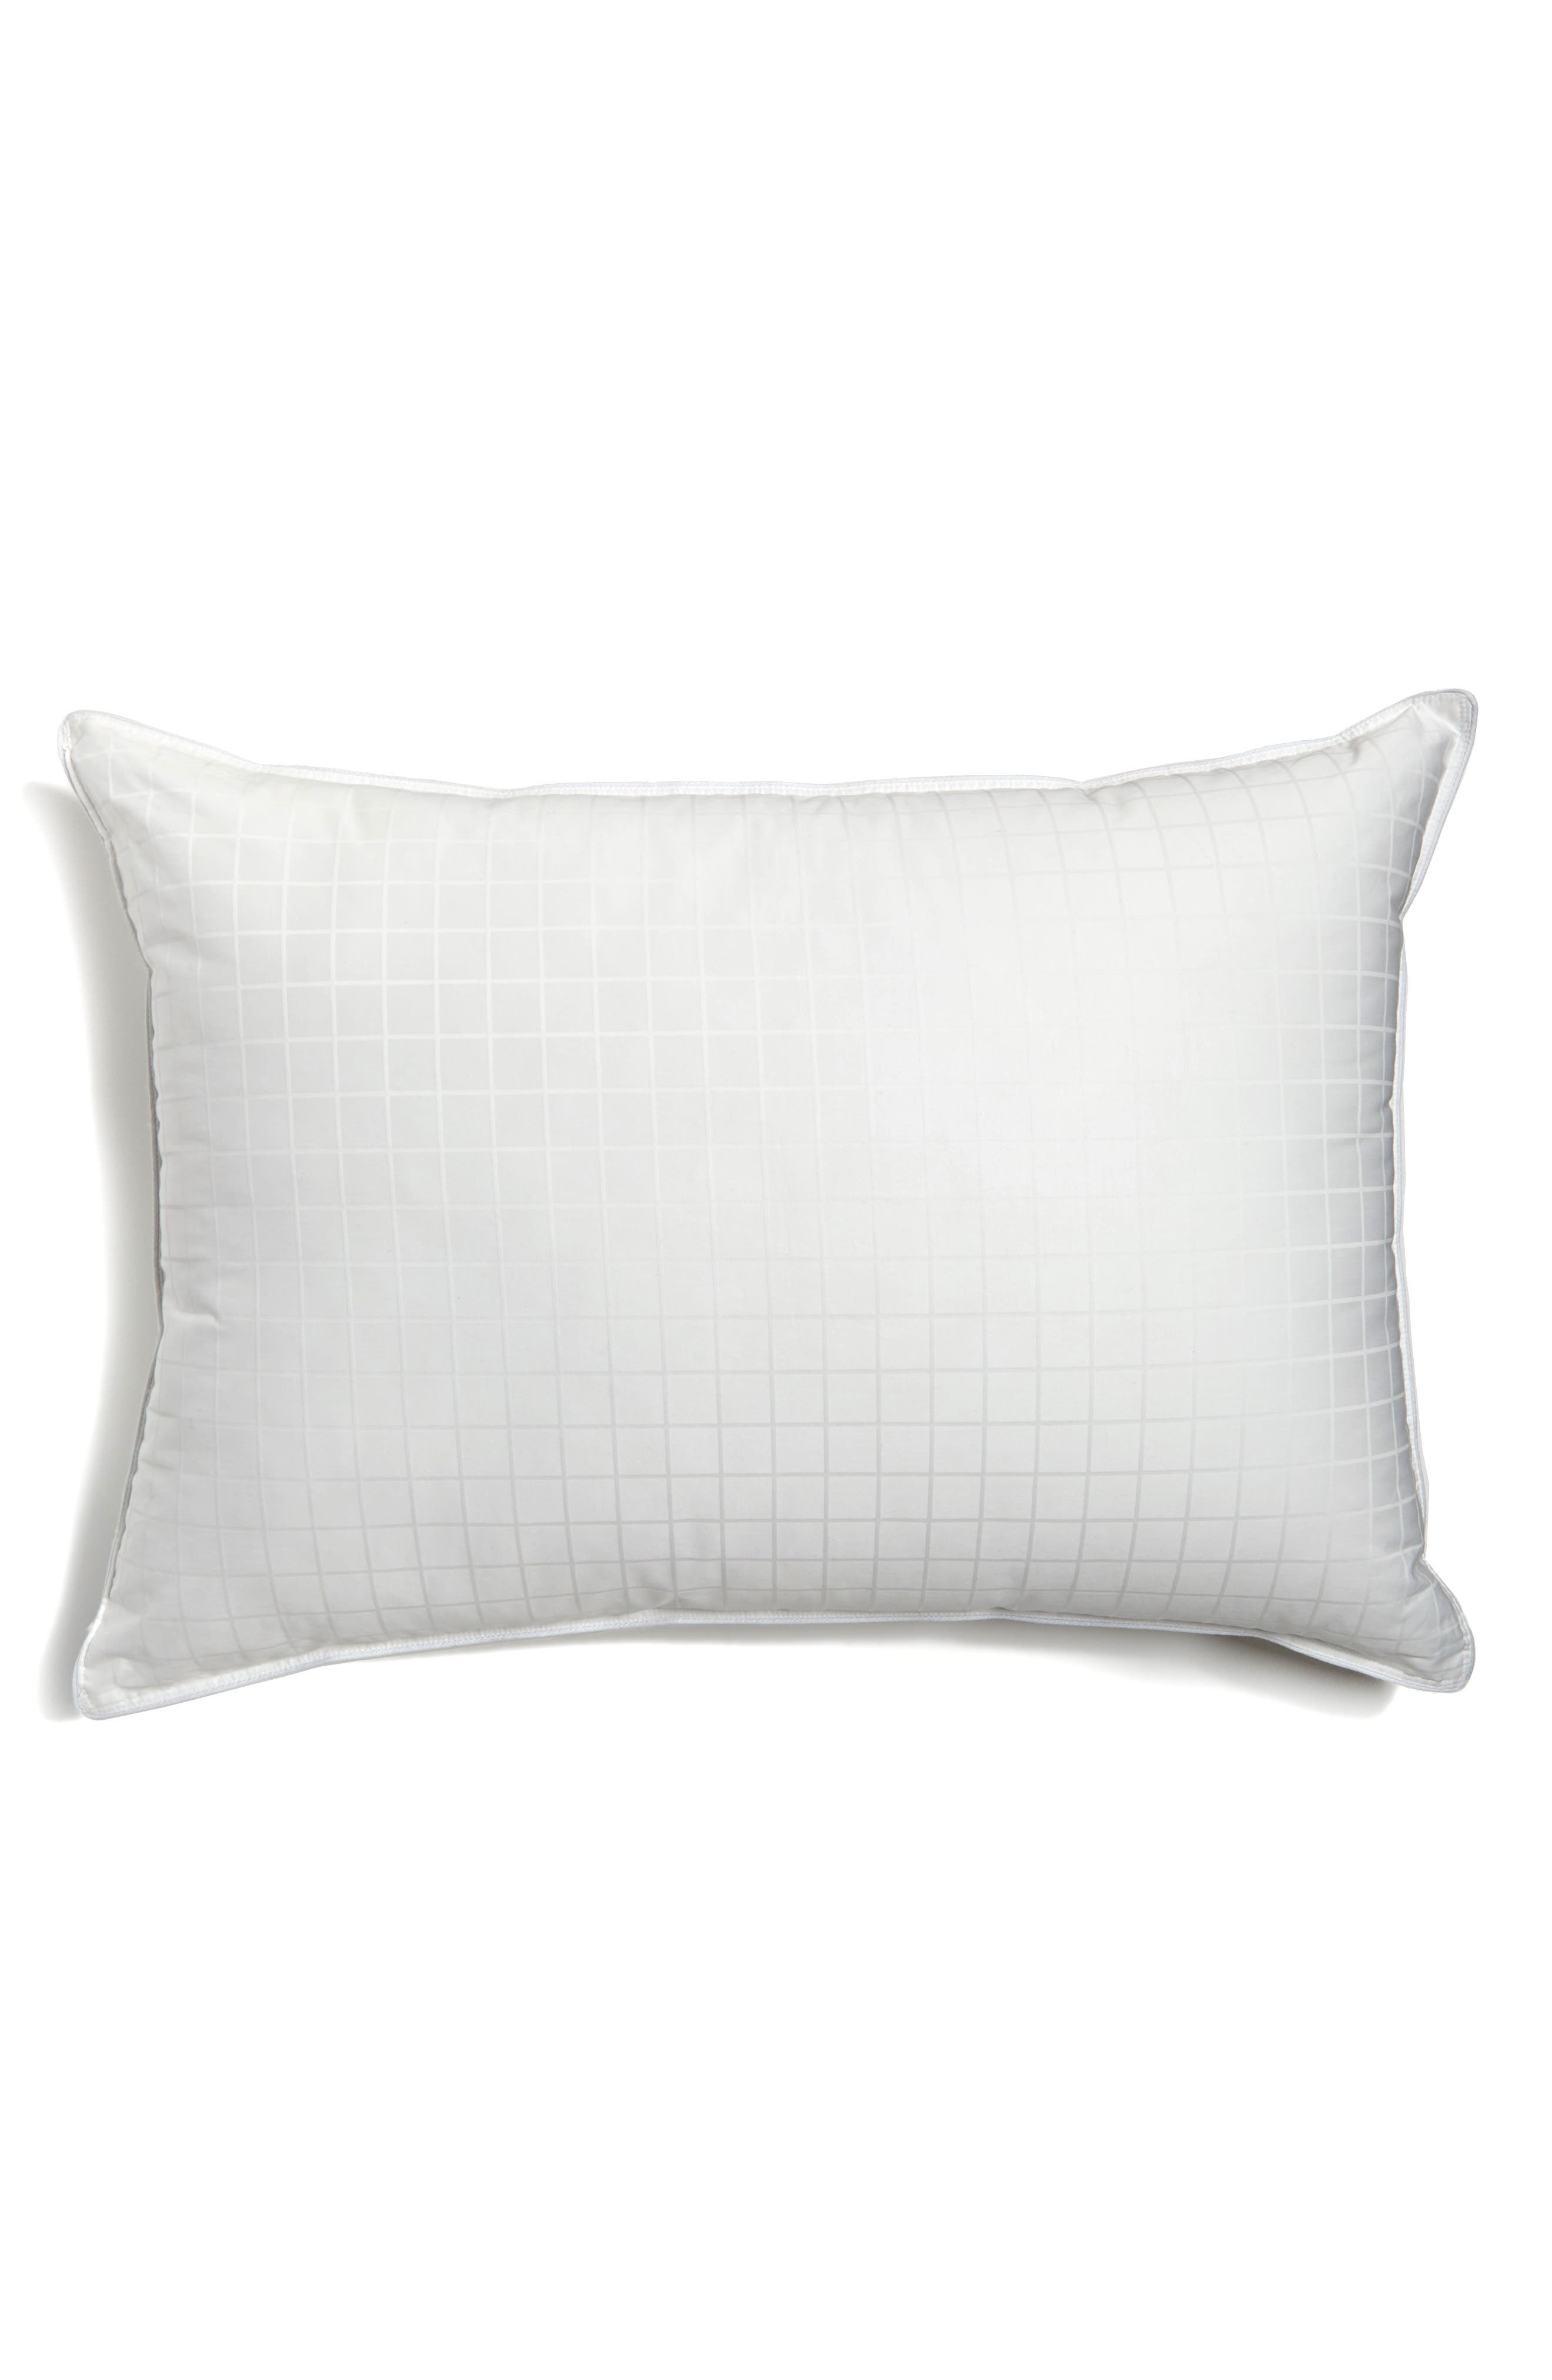 Nordstrom at Home Luxe Down & Feather Pillow